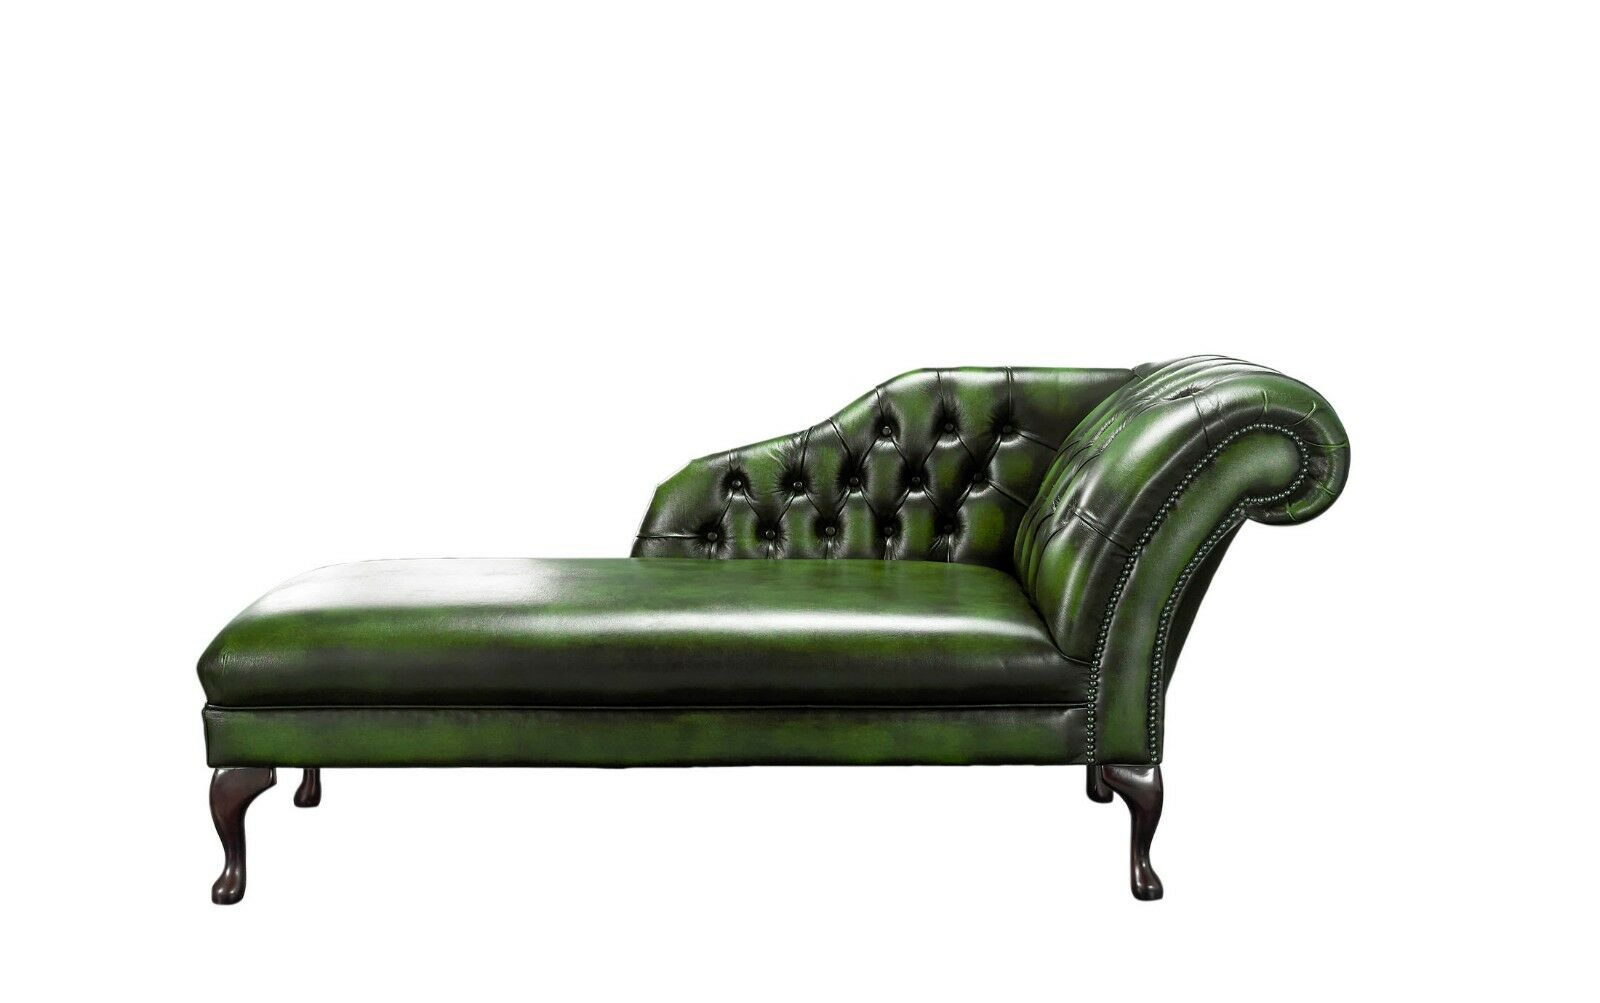 - Handmade Chesterfield New Genuine Leather Chaise Lounge Day Bed